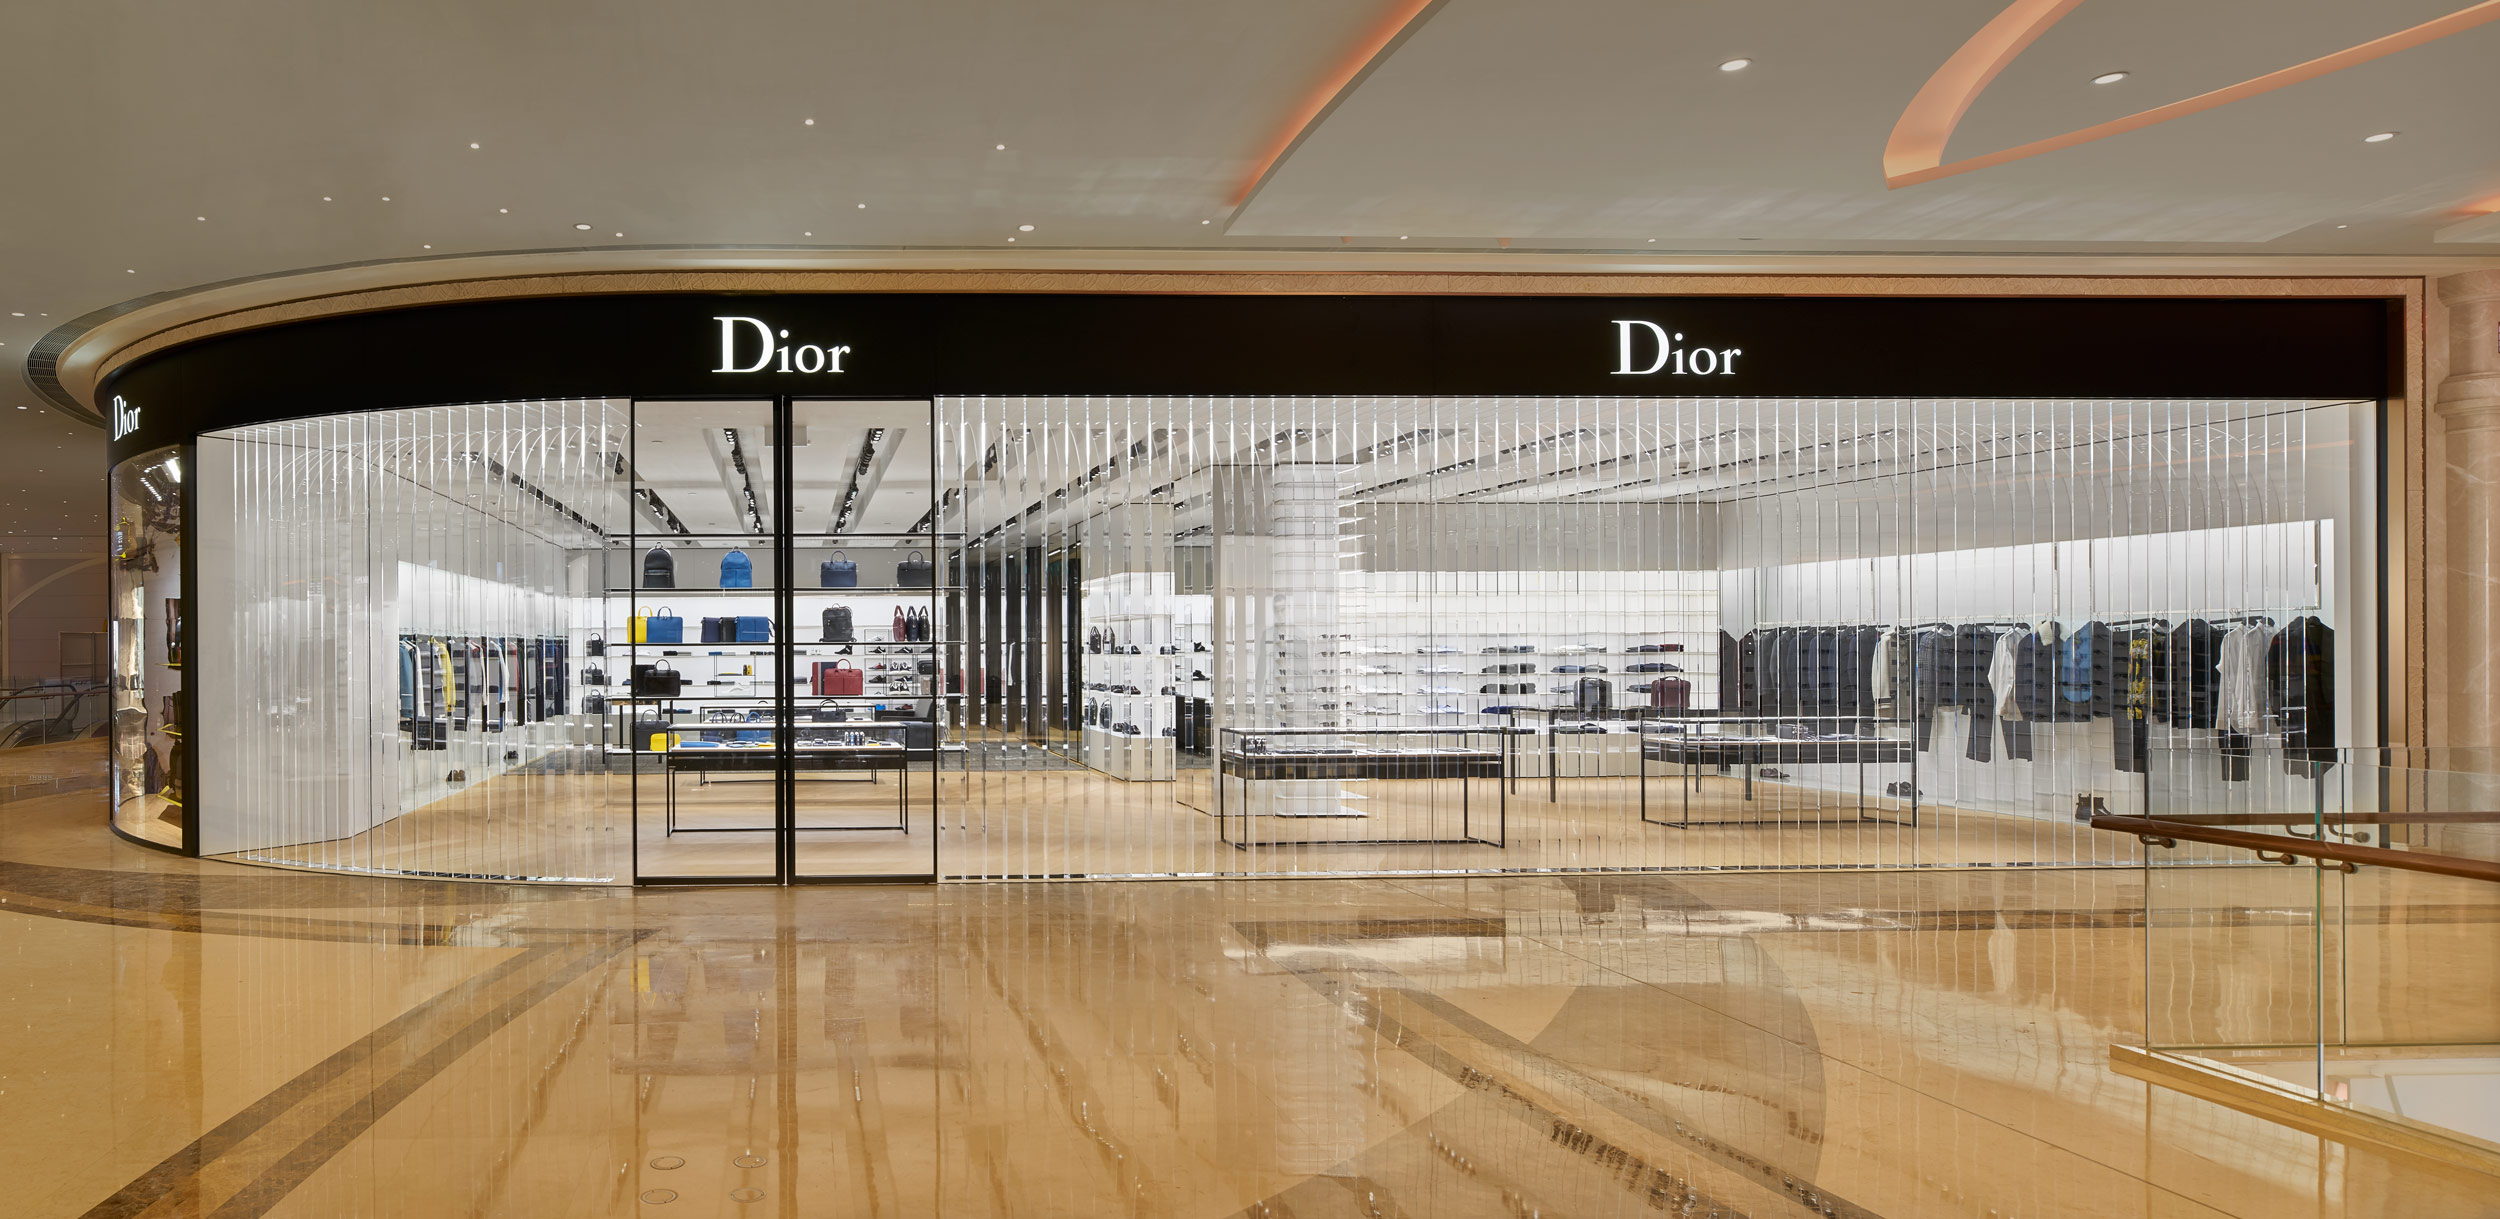 Dior-store-front-Macao